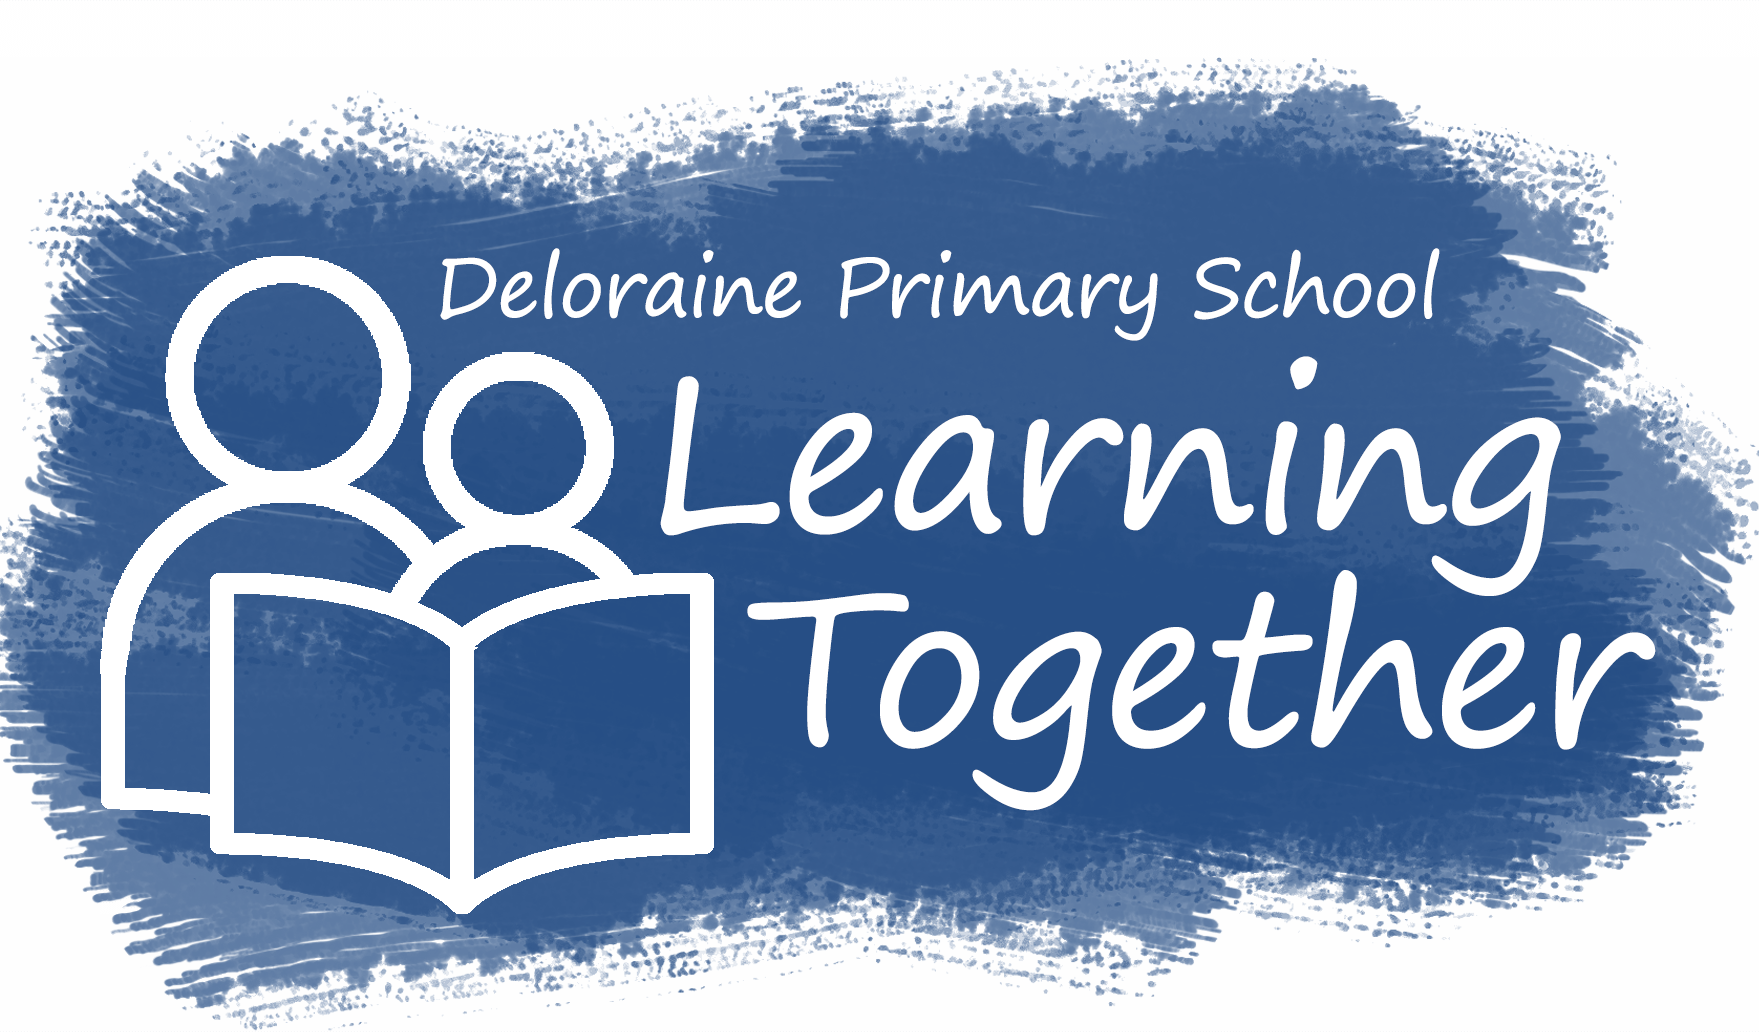 logo illustration of a adult and child reading together